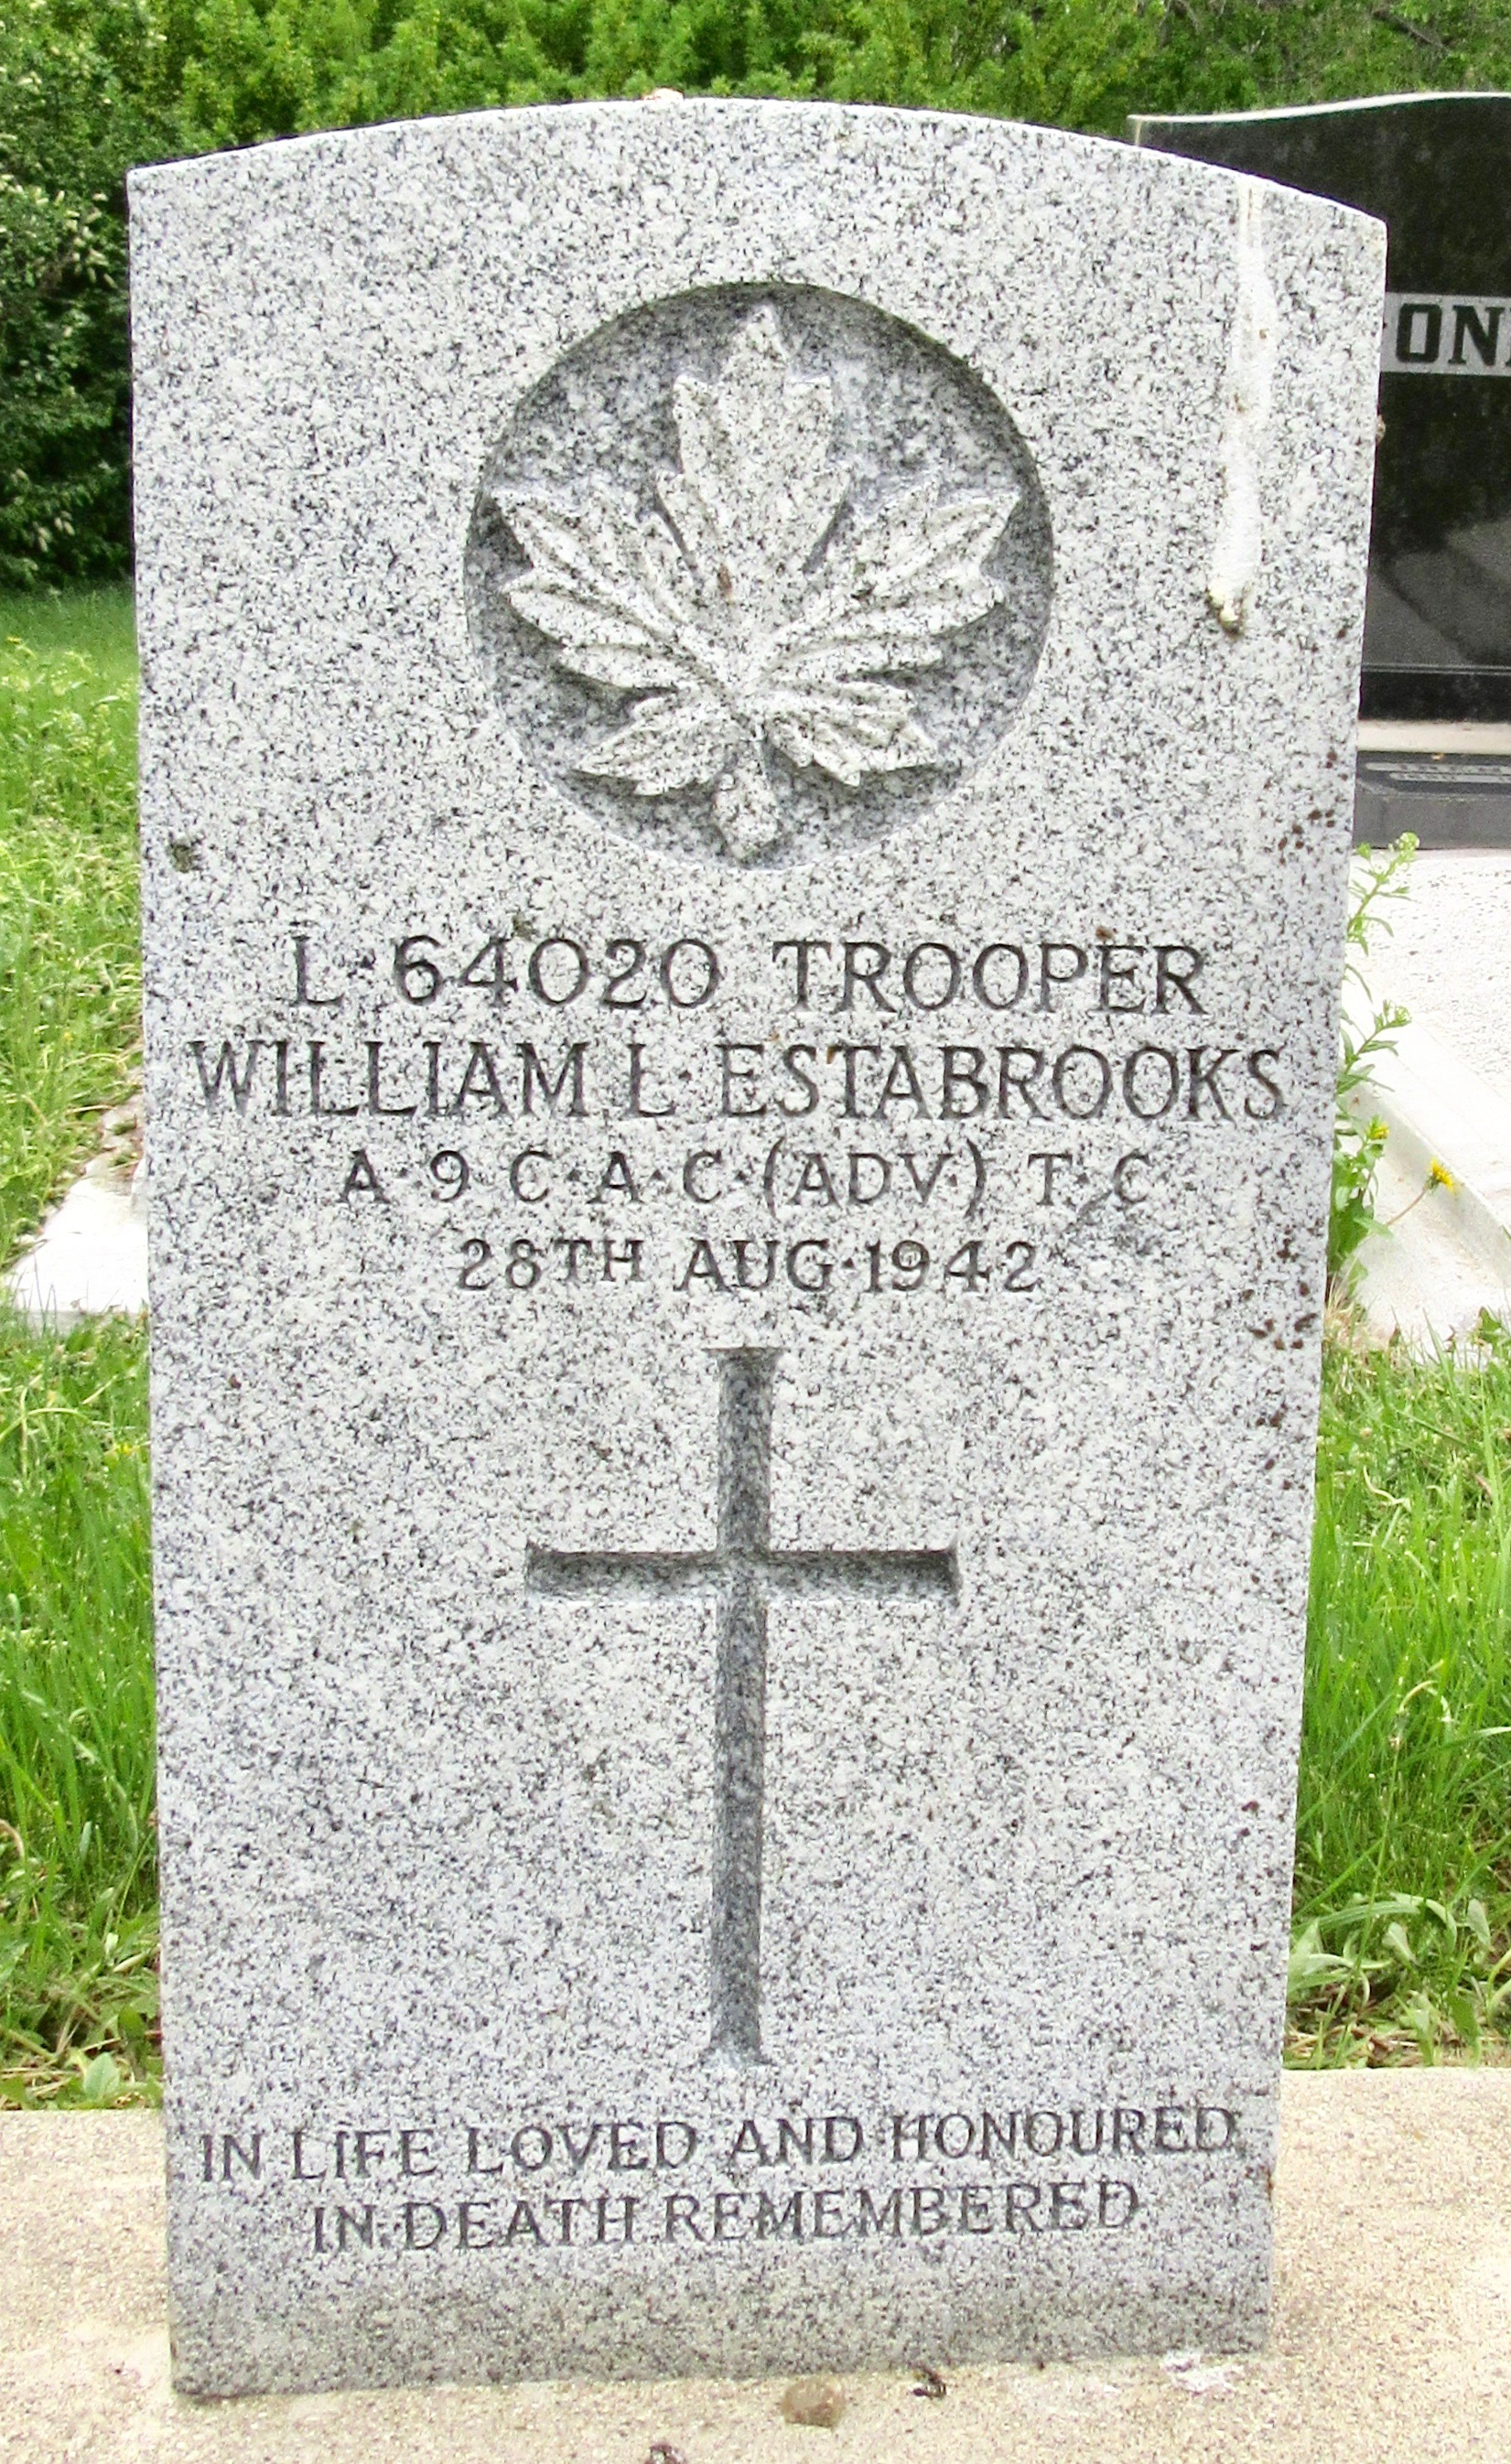 Grave Marker– L64020  Trooper WILLIAM L ESTABROOKS A 9 C.A.C. (ADV.) T.C. 28th Aug. 1942  In Life Loved and honoured In Death Remembered